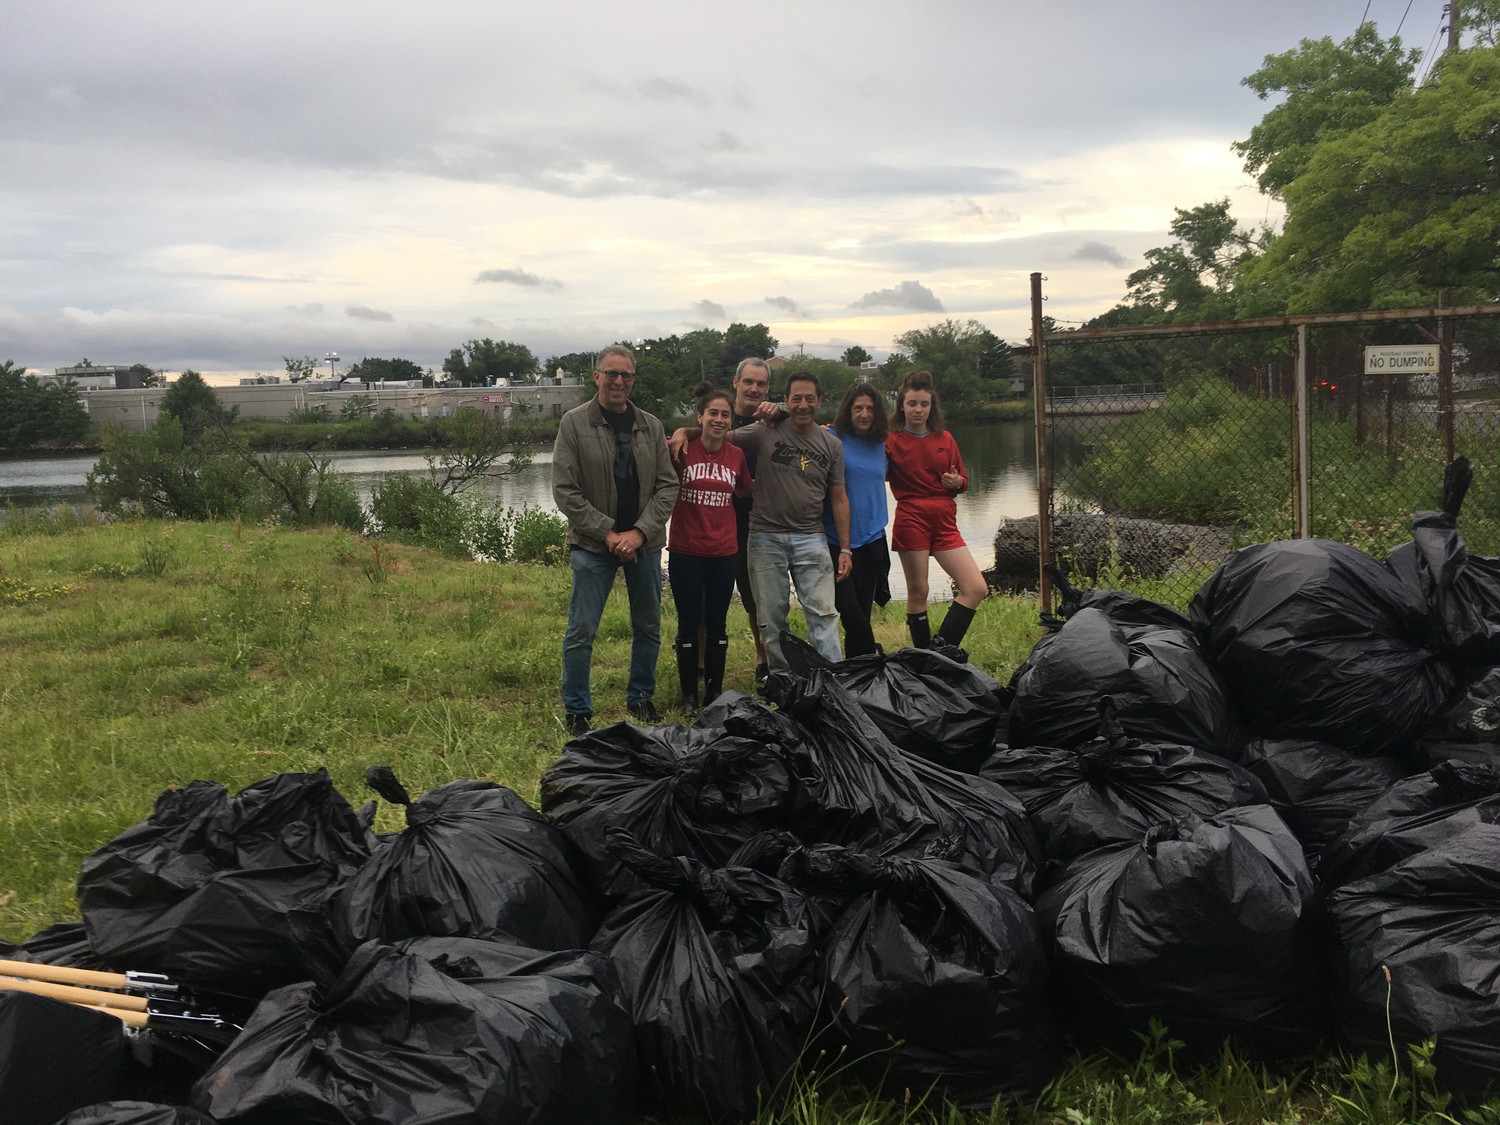 The cleanup yielded more than 60 bags of trash. From left, Ernie Schultz, Carli Feldman, David Augusto, Bob Feldman, Marla Augusto and Casey Augusto.